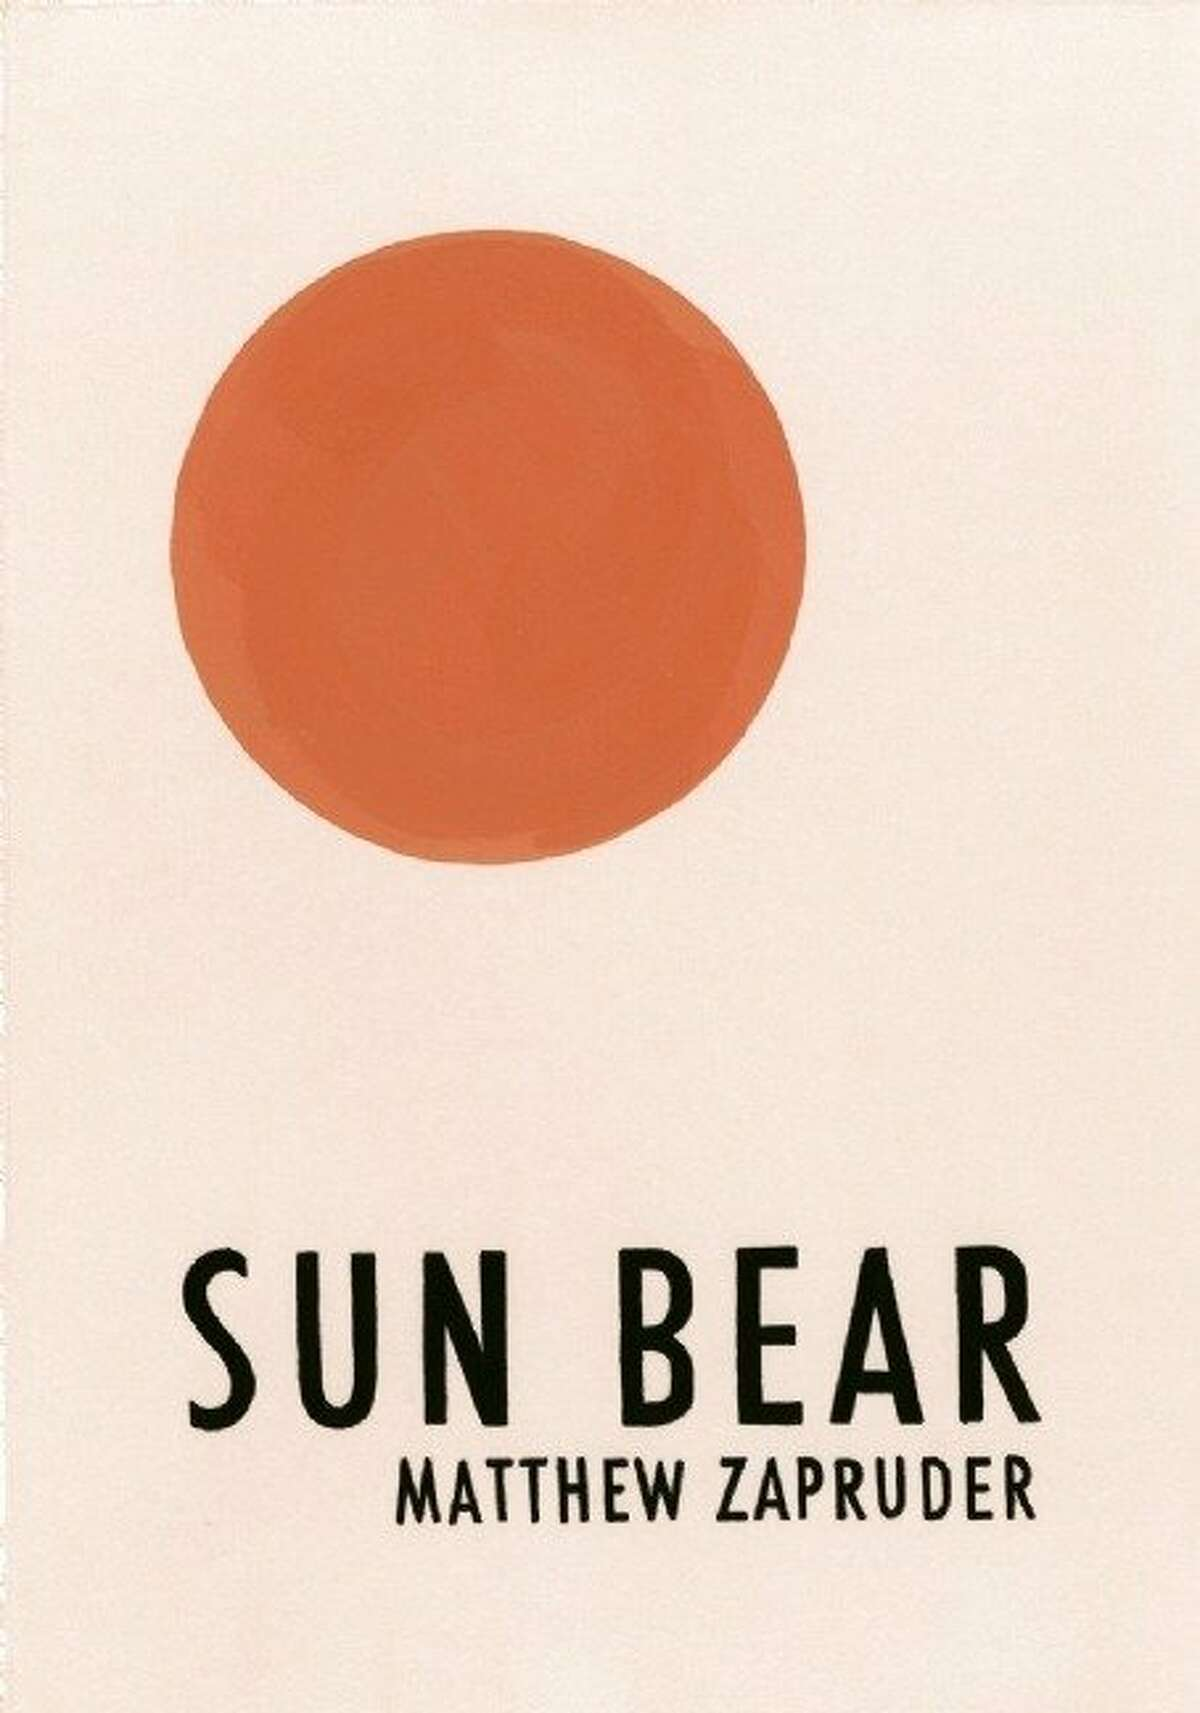 Sun Bear, by Matthew Zapruder